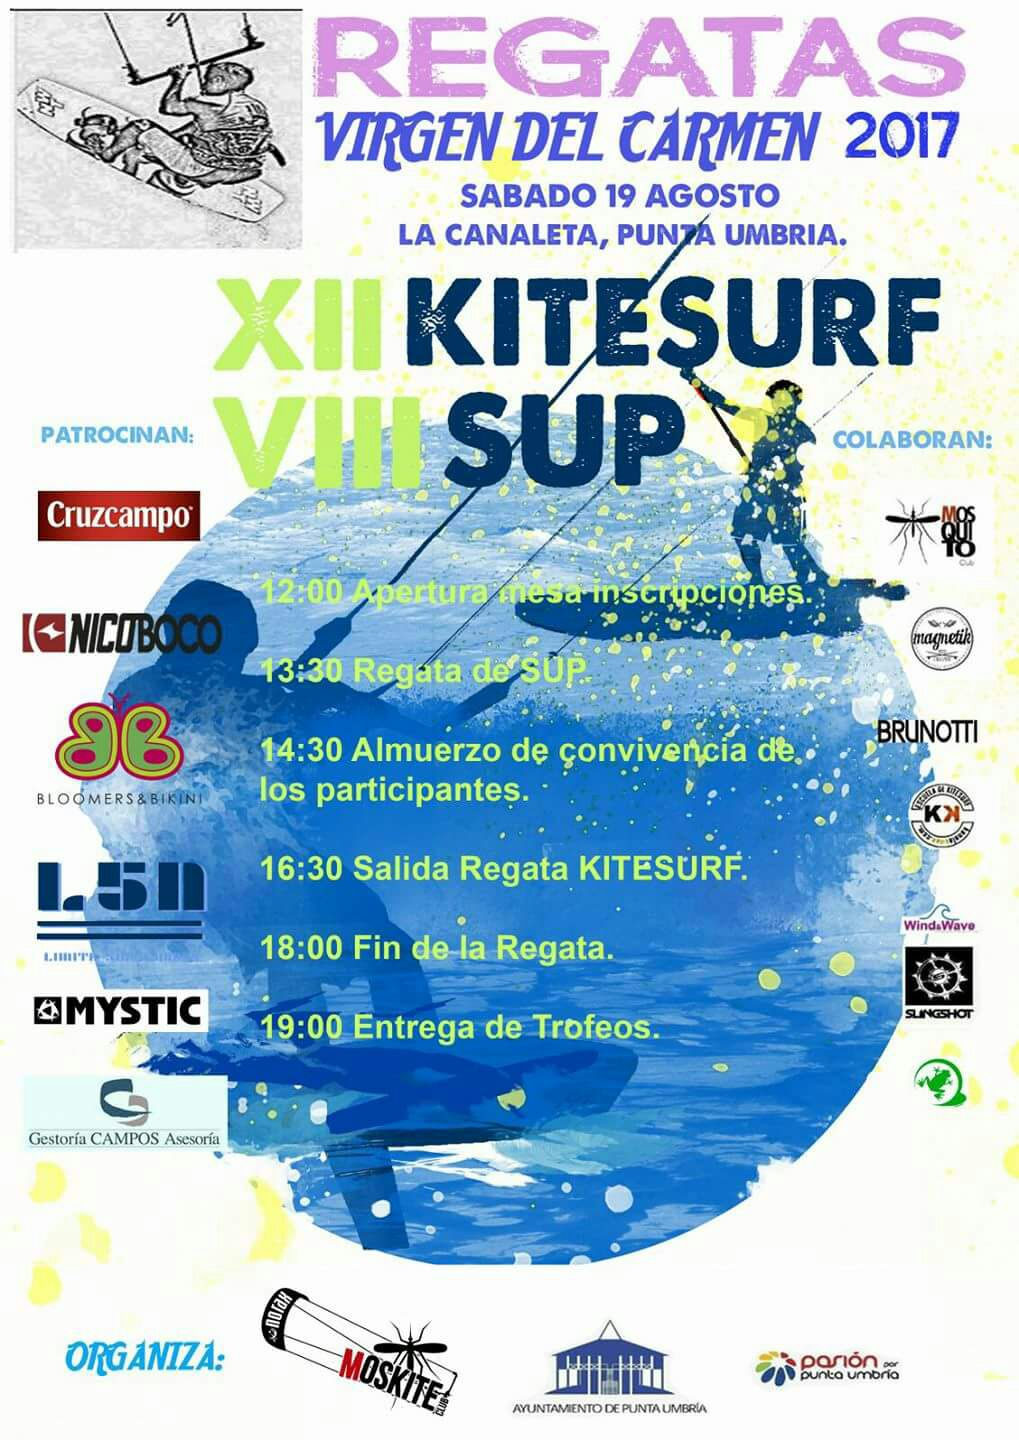 La XII Regata de Kite Surf